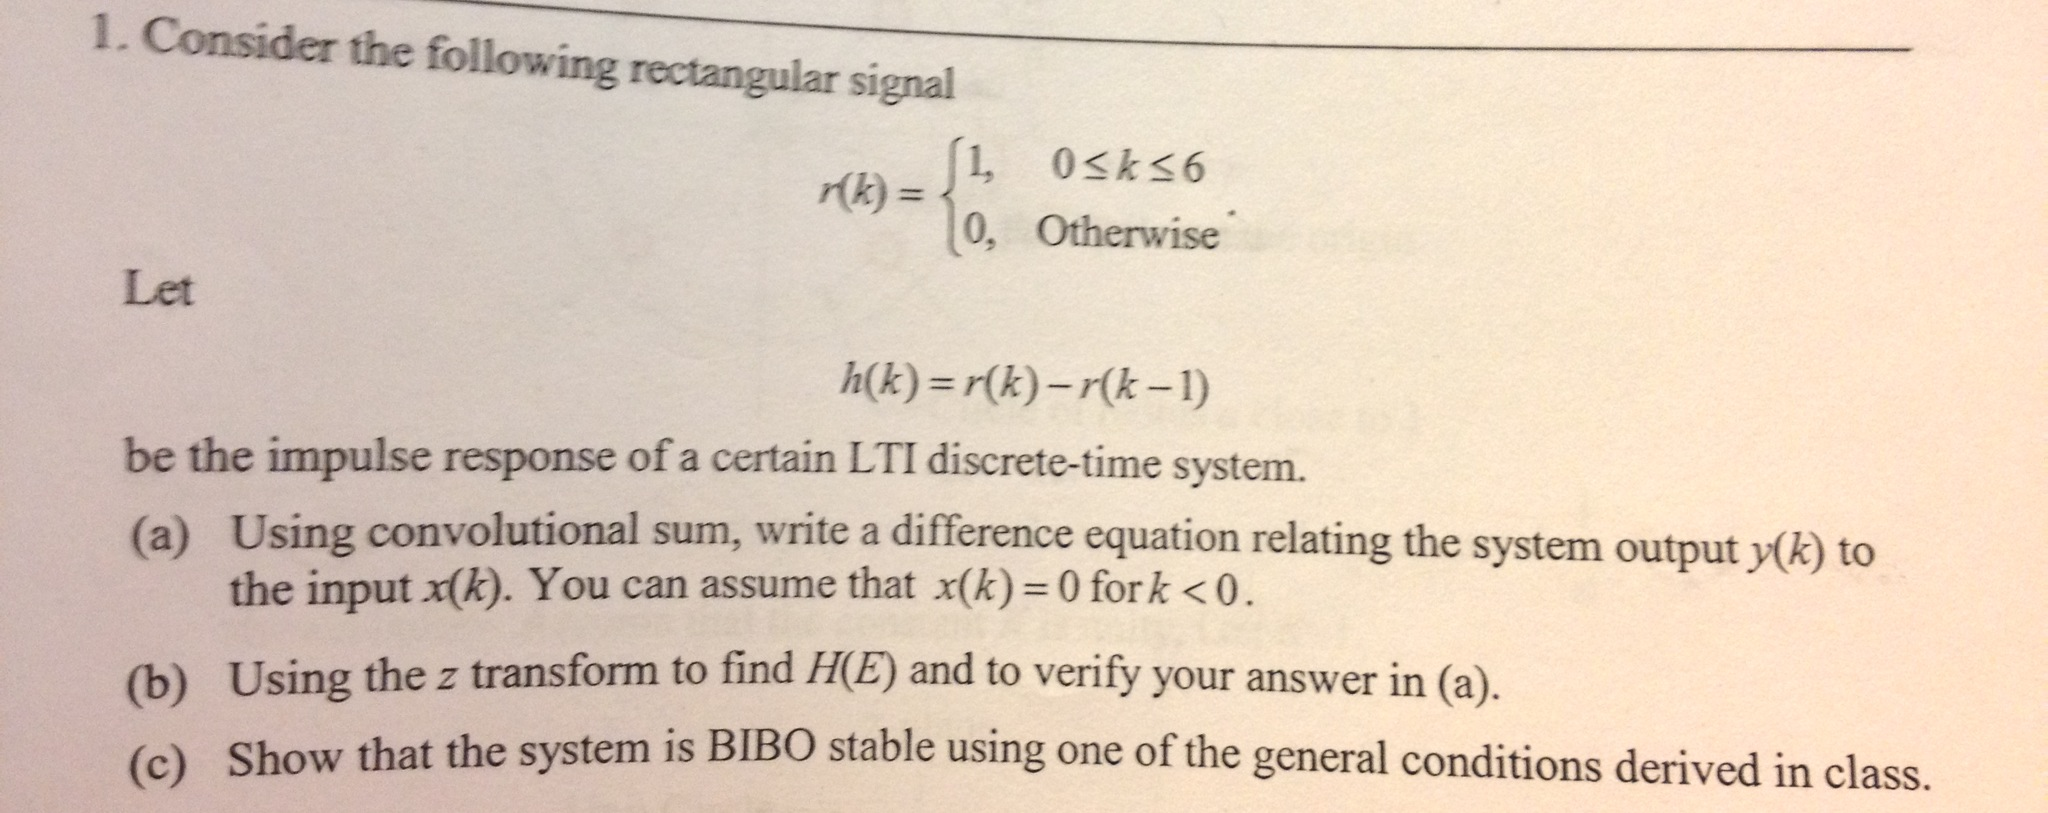 Consider the following rectangular signal r(k)={1